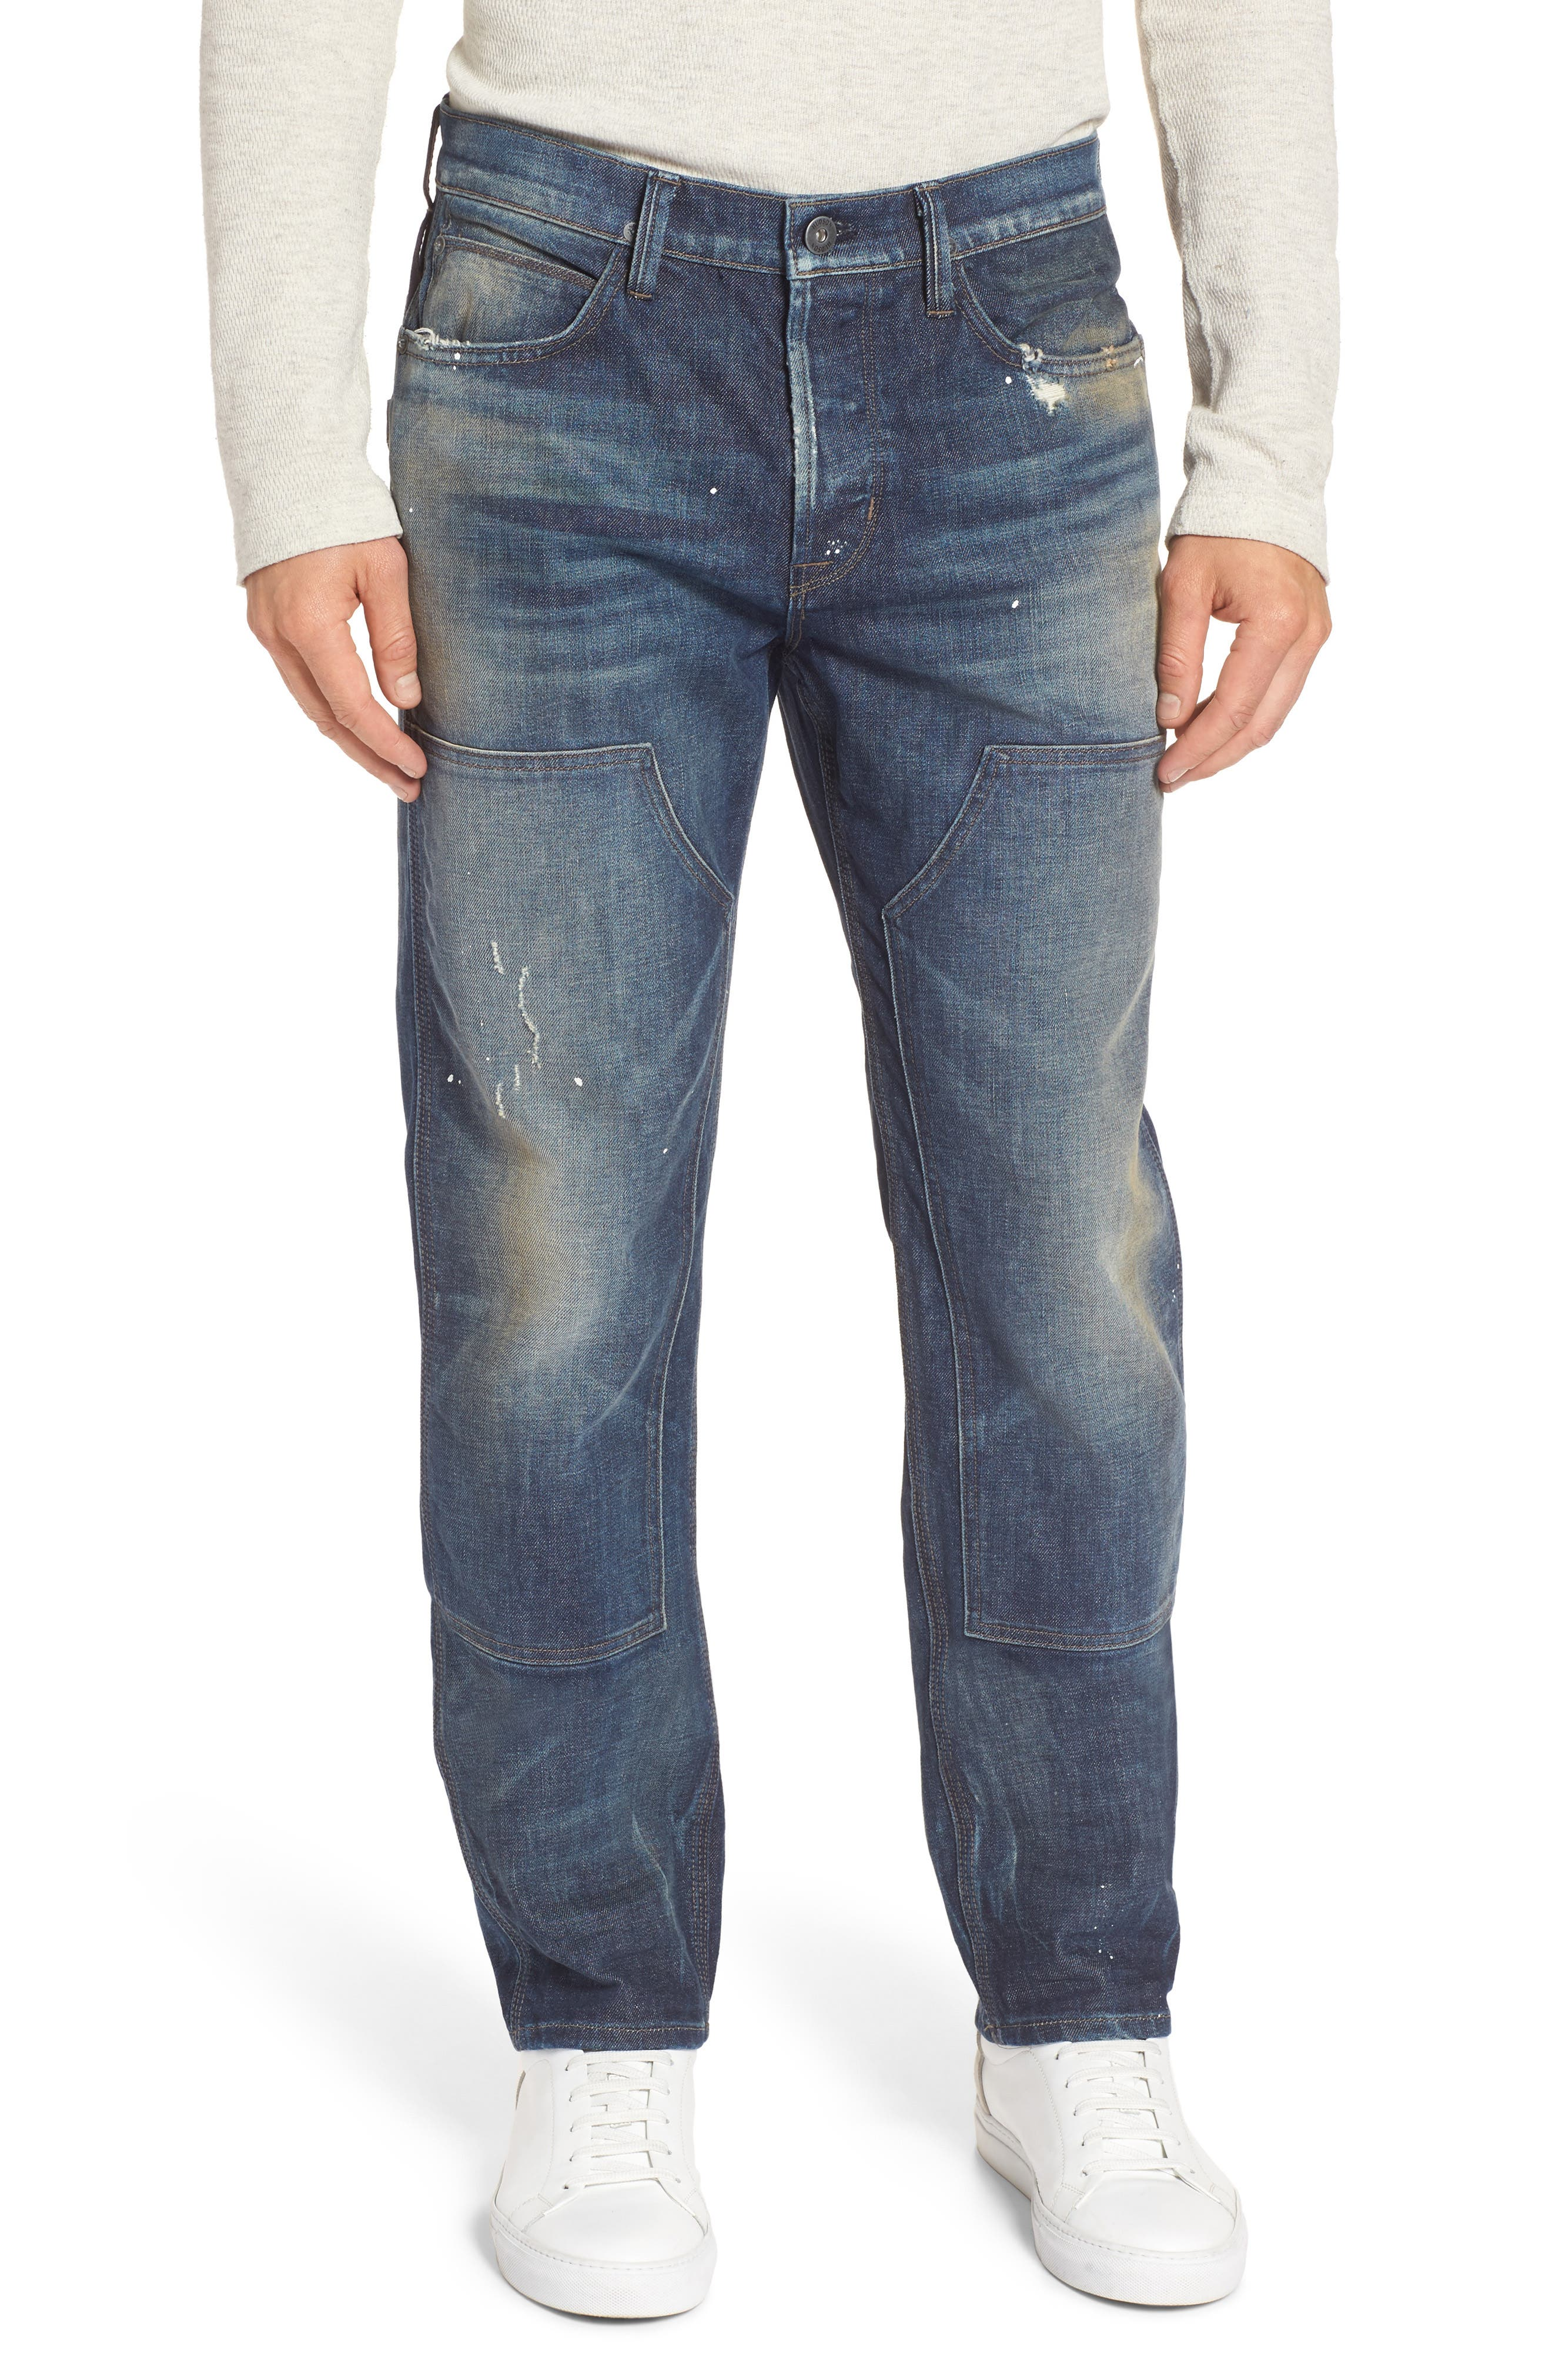 Hunter Straight Fit Jeans,                         Main,                         color, Virus